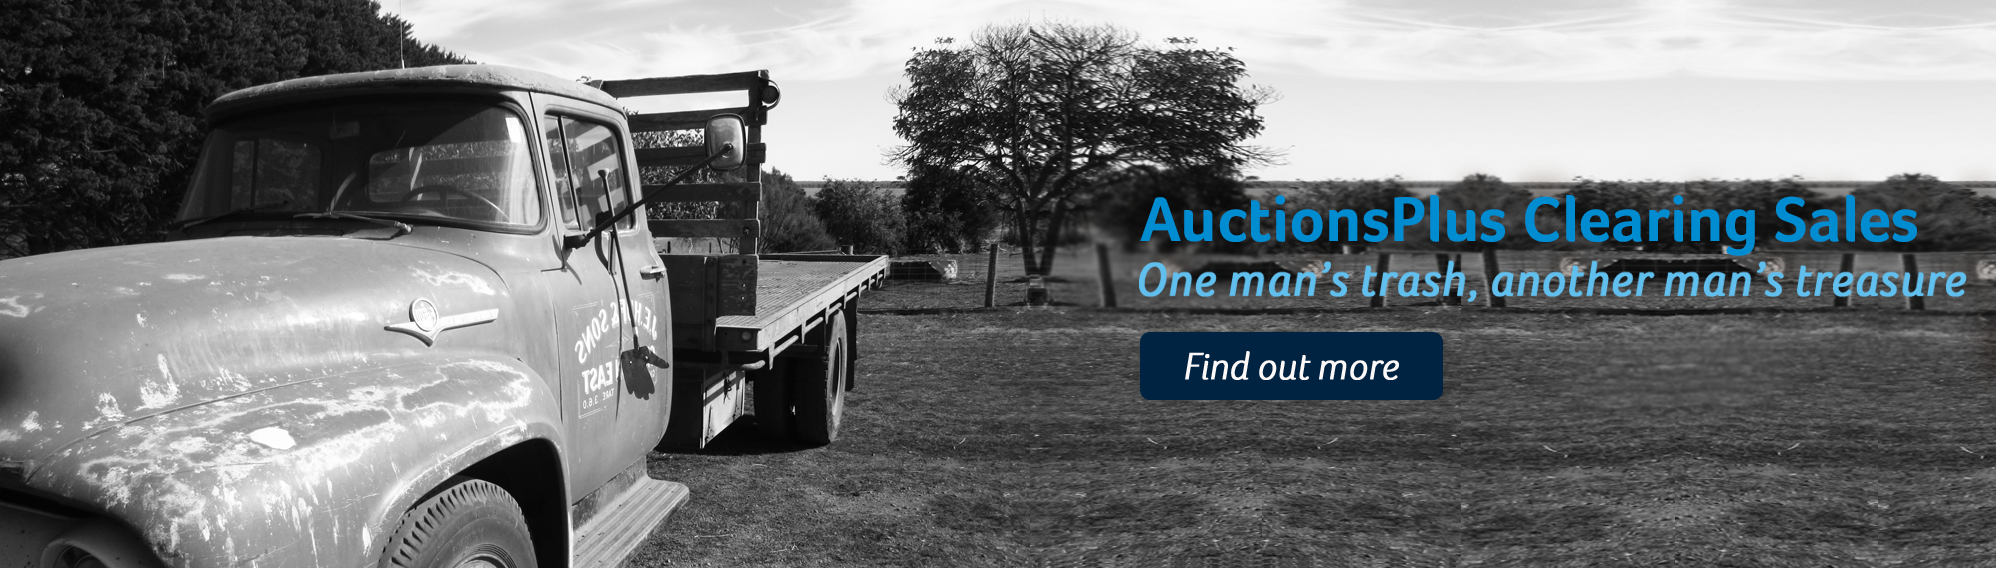 AuctionsPlus Clearing Sales